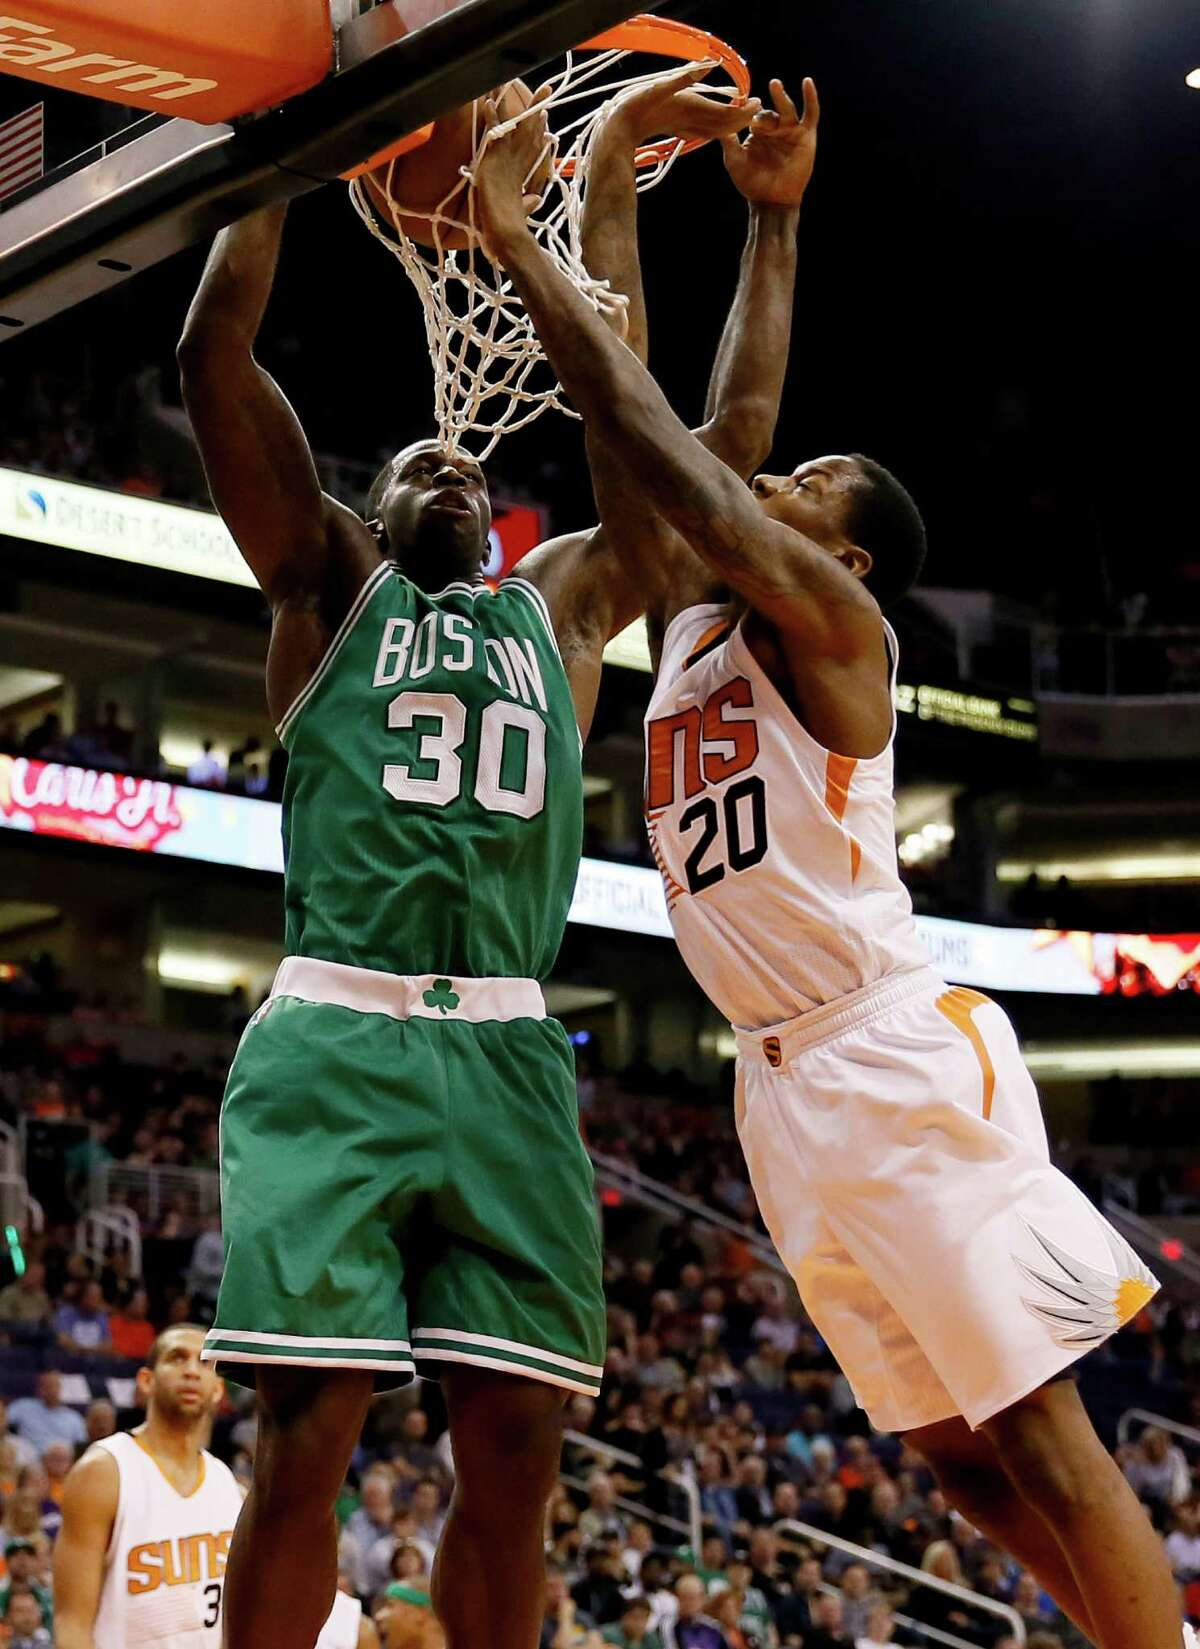 Boston Celtics' Brandon Bass (30) dunks over Phoenix Suns' Archie Goodwin during the first half of an NBA basketball game Monday, Feb. 23, 2015, in Phoenix. (AP Photo/Matt York) ORG XMIT: AZMY107